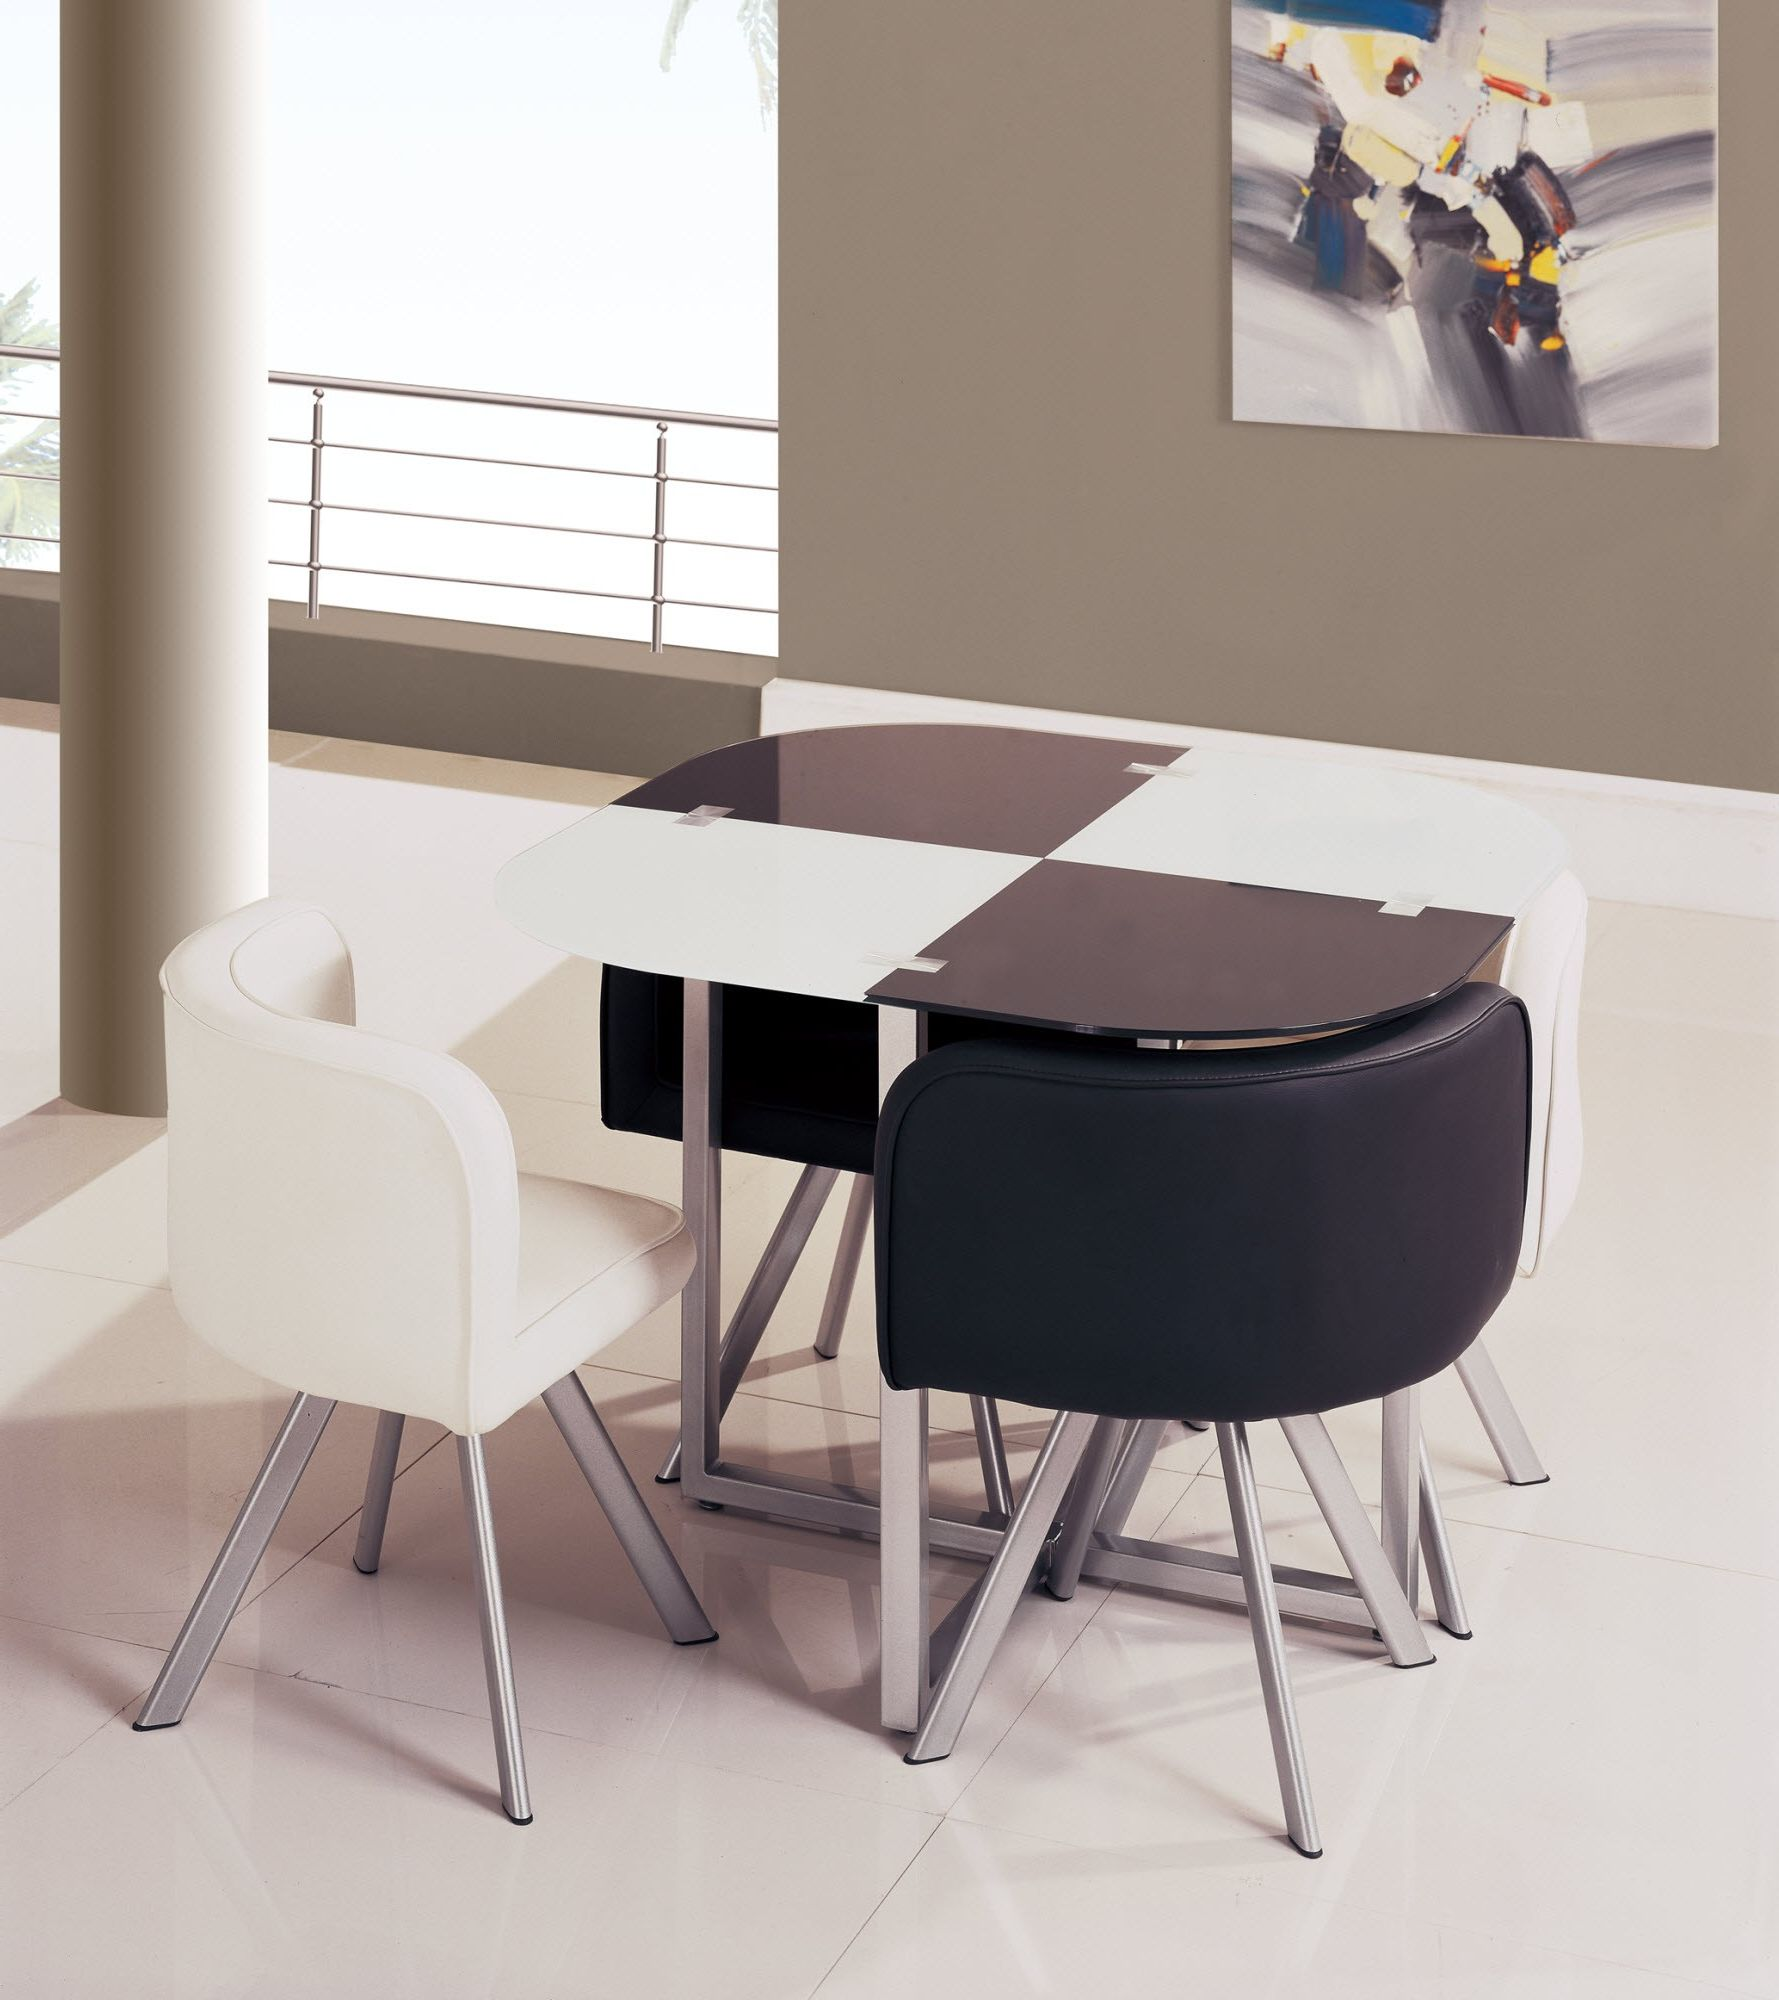 space saving dining table and chairs home goods saver set homesfeed